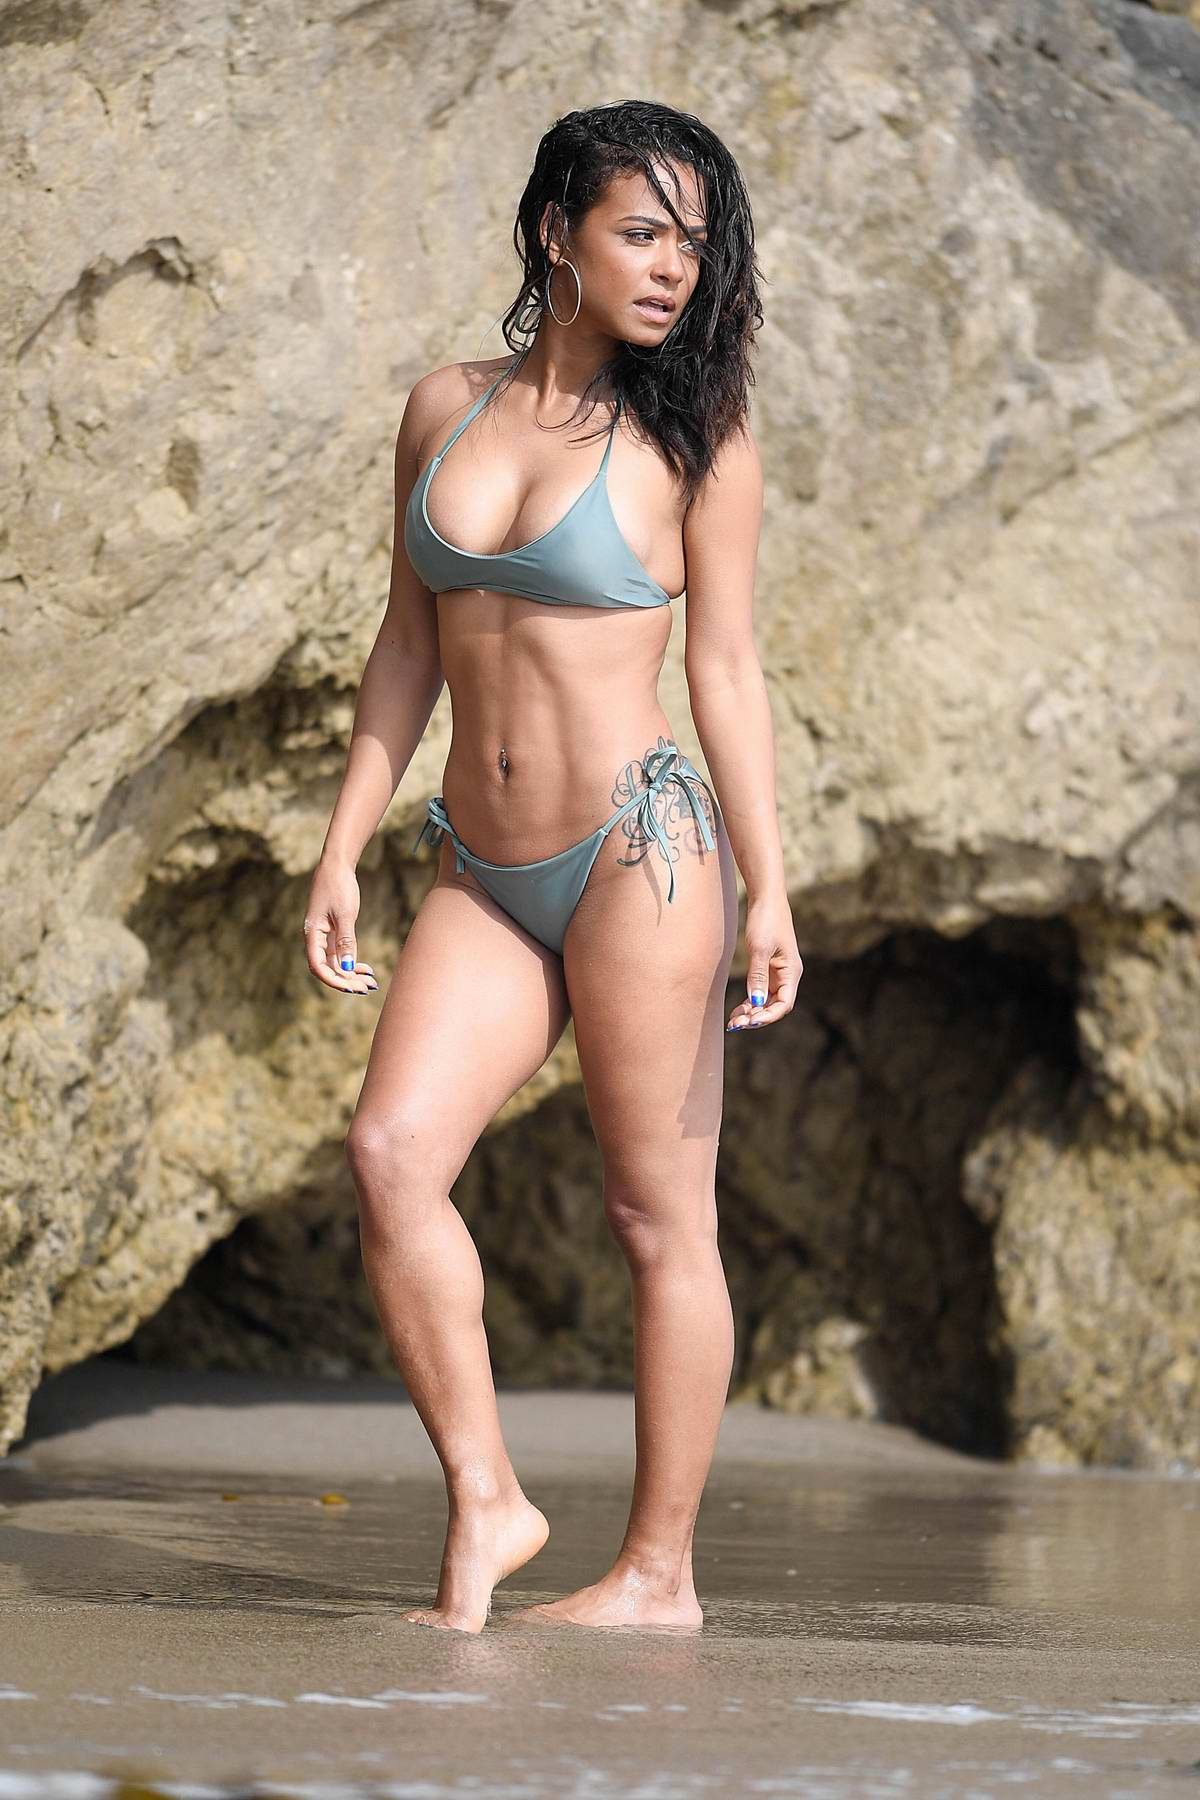 Christina Milian sizzles in multiple bikini and swimsuits during a shoot for 'House Of Fine Gold' swimwear in Malibu, California